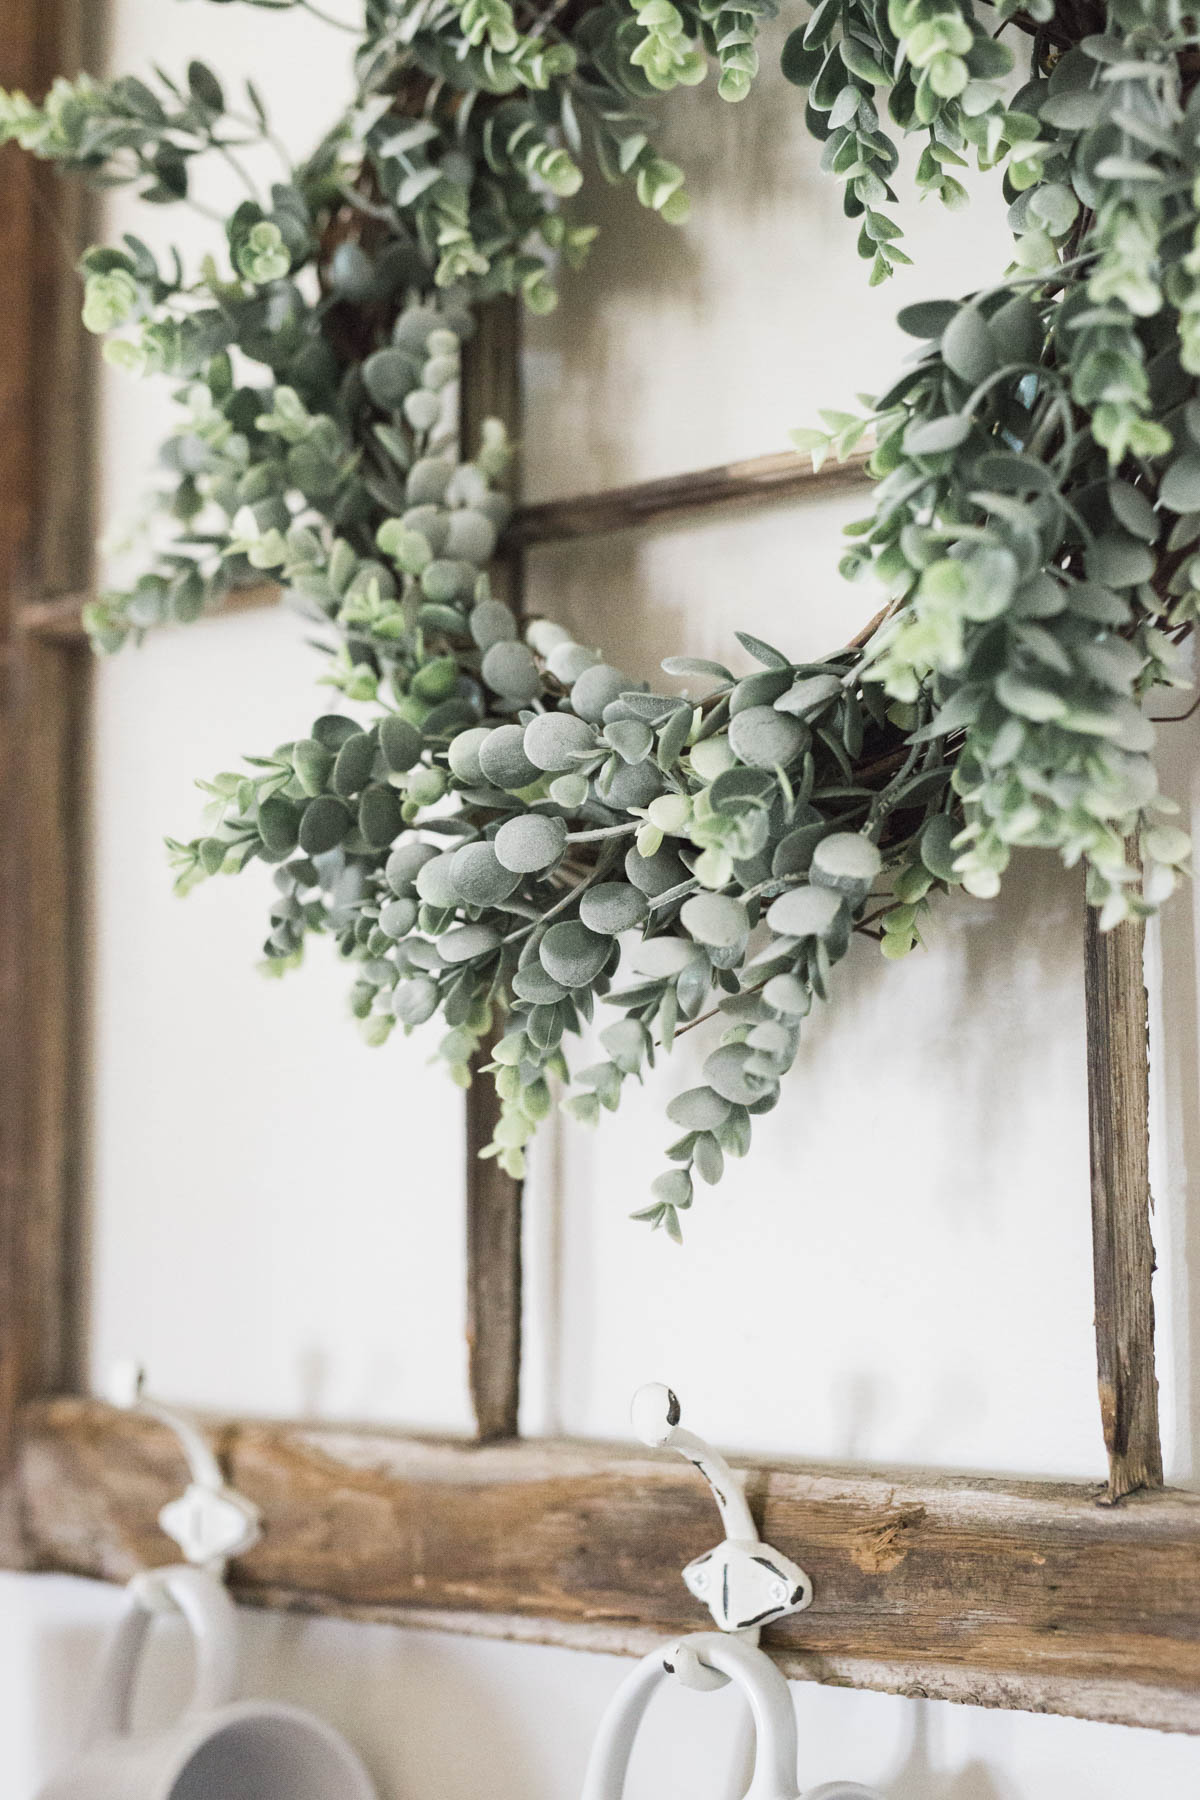 shotbychelsea_blog_farmhouse_decor-3.jpg